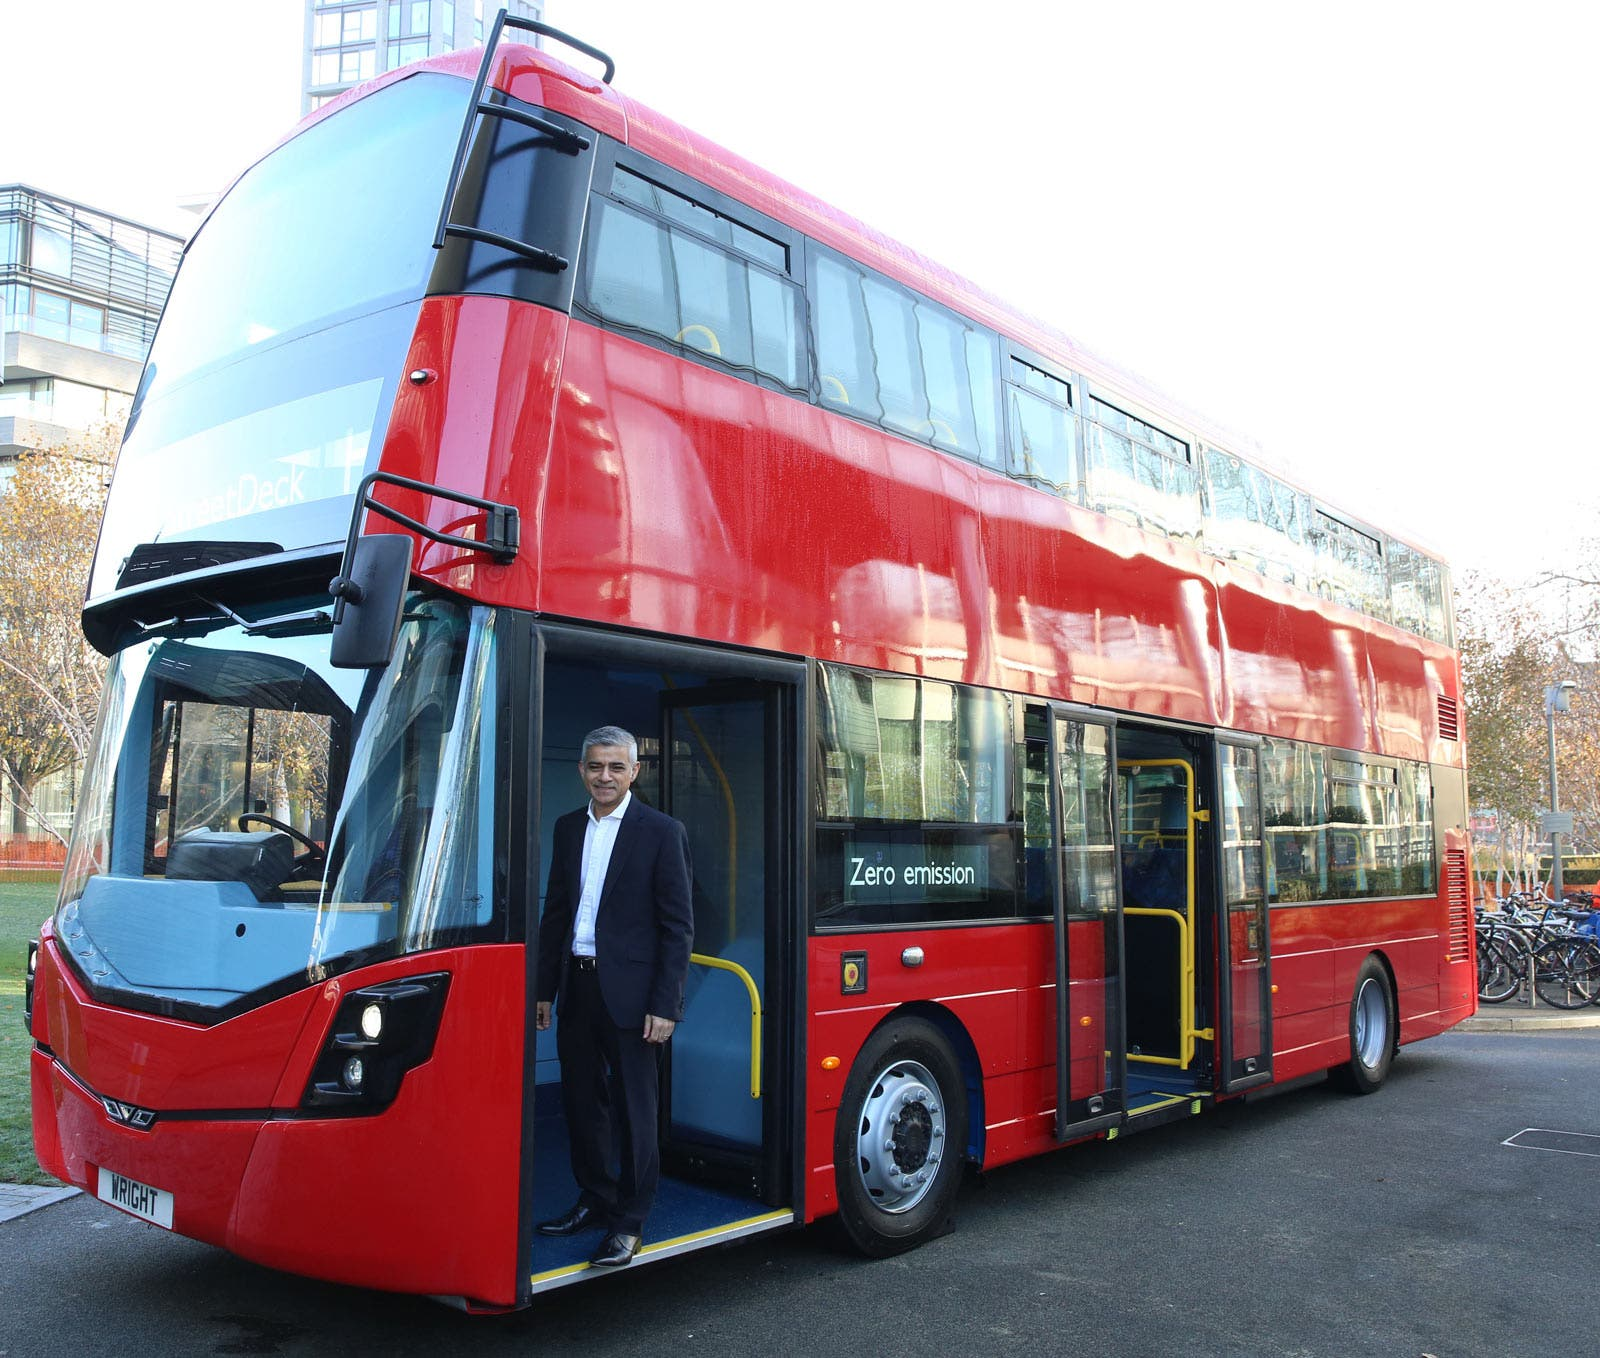 Mayor Of London All New Single Decker Buses For Center Of